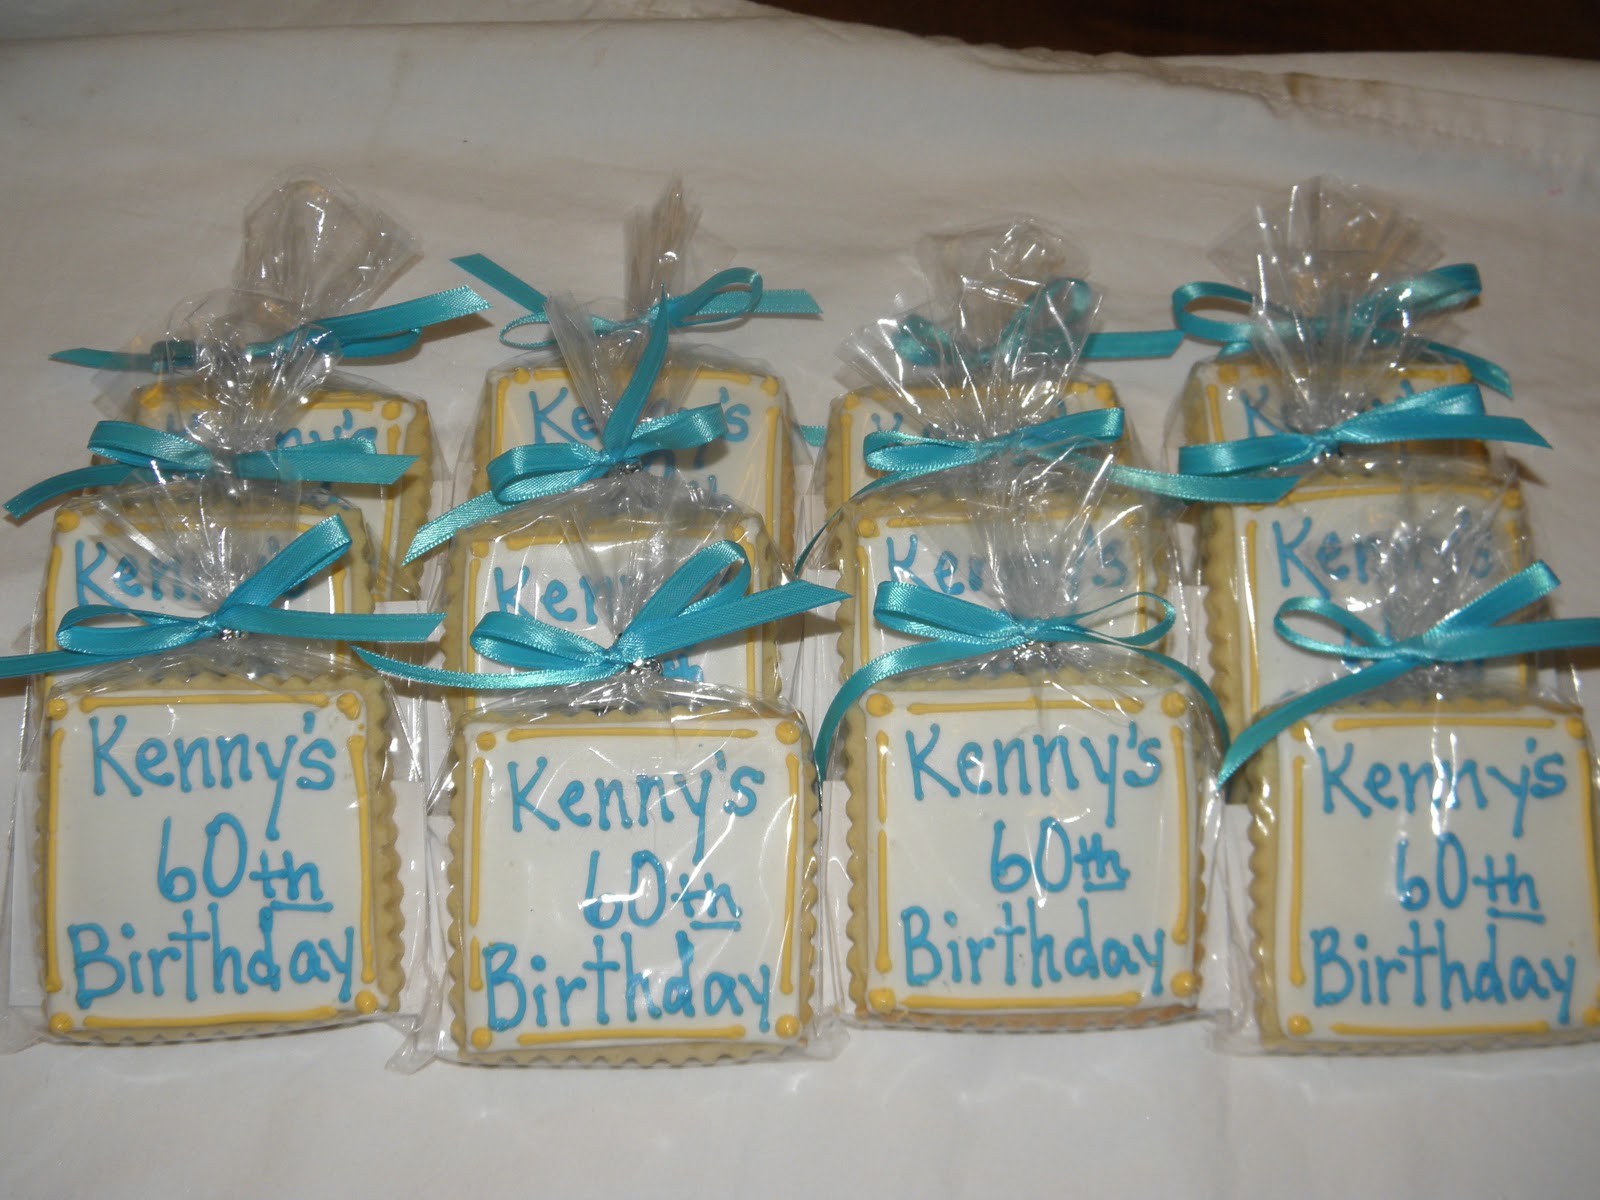 60th Birthday Cookie Favors